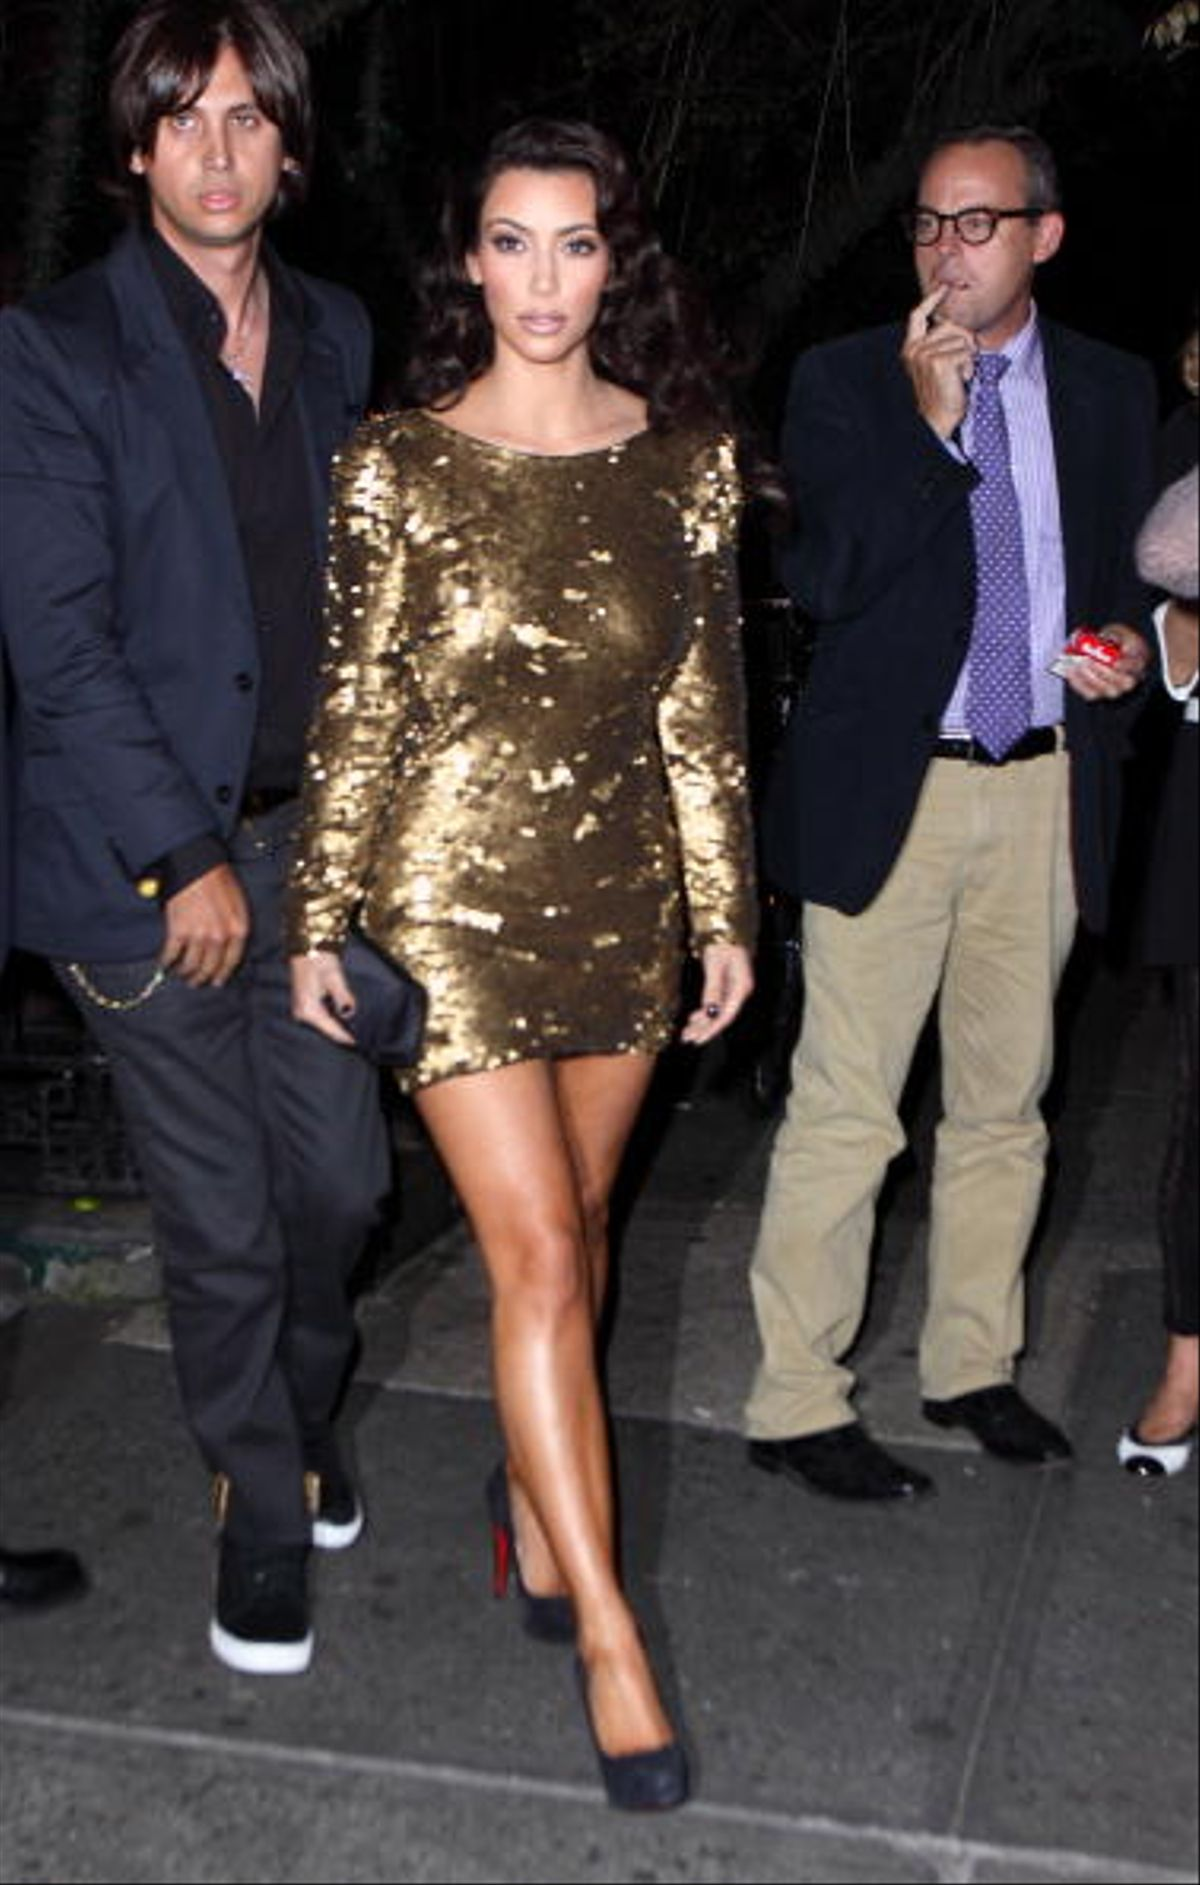 NEW YORK - SEPTEMBER 13: Kim Kardashian (C) and Jonathan Cheban (L) attend a post MTV Video Music Awards dinner at The Waverly Inn on September 13, 2009 in New York City. (Photo by John Parra/WireImage)